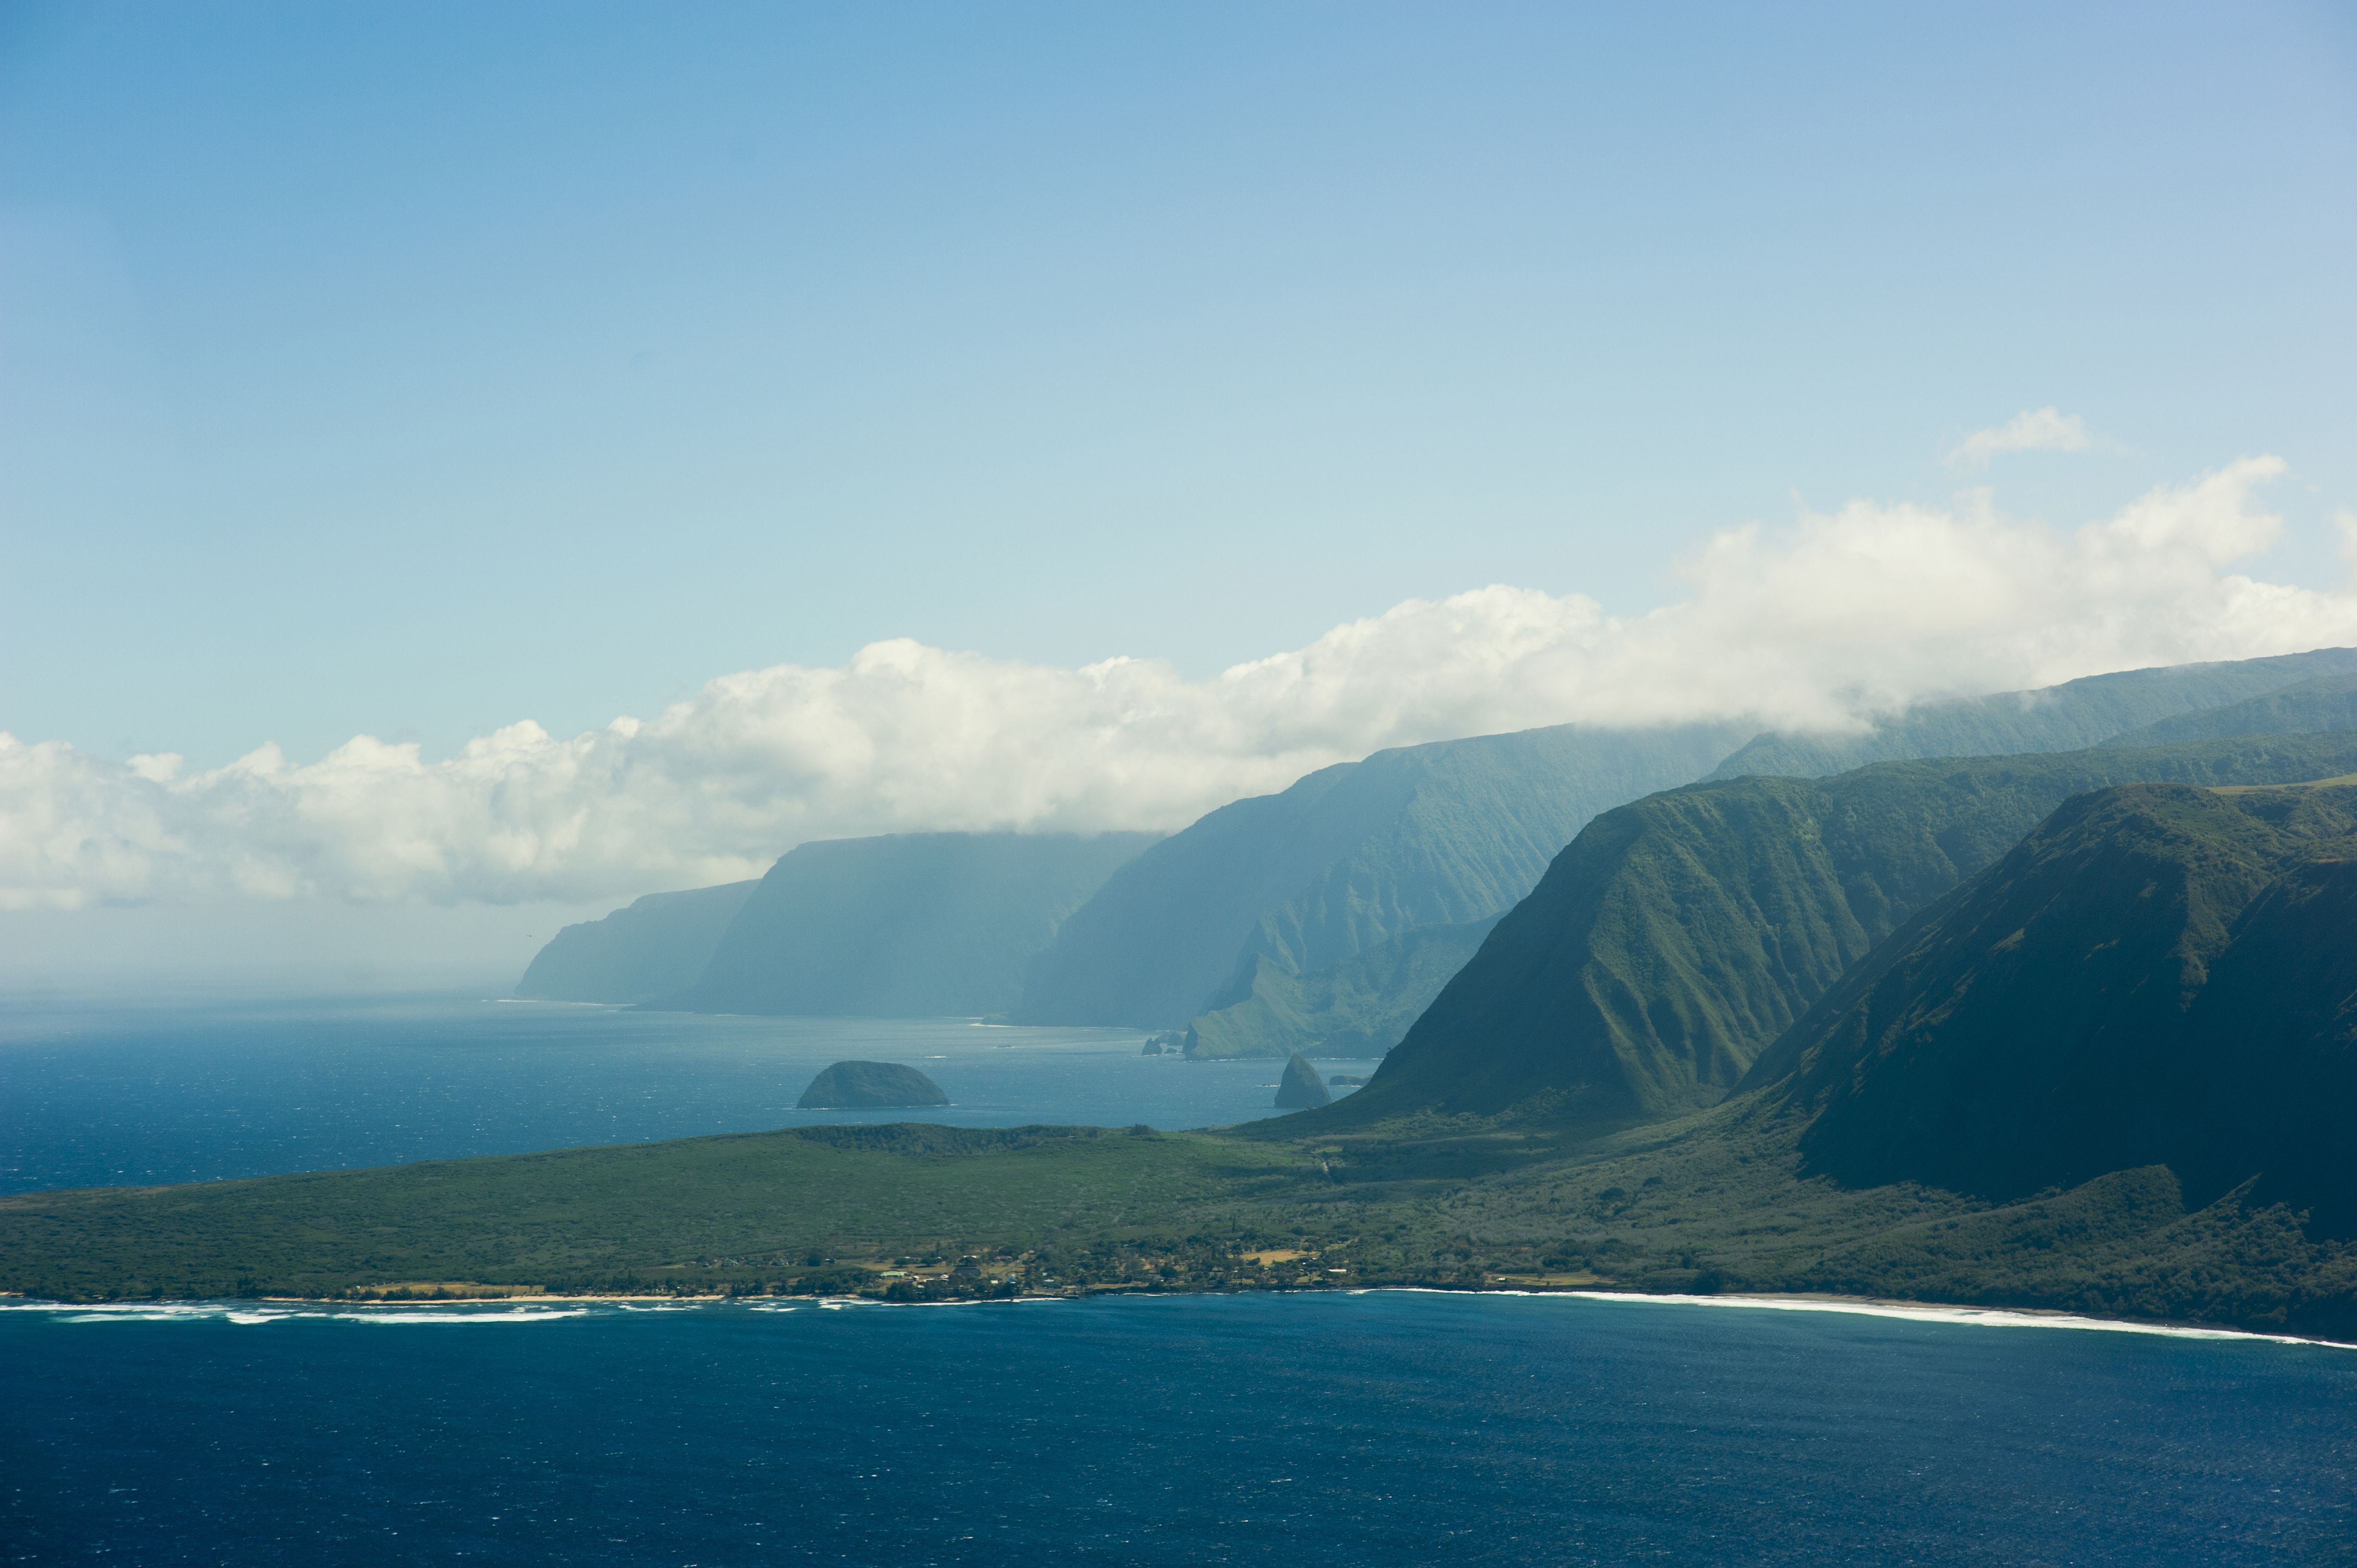 State of Hawaii Island Names, Nicknames and Geography